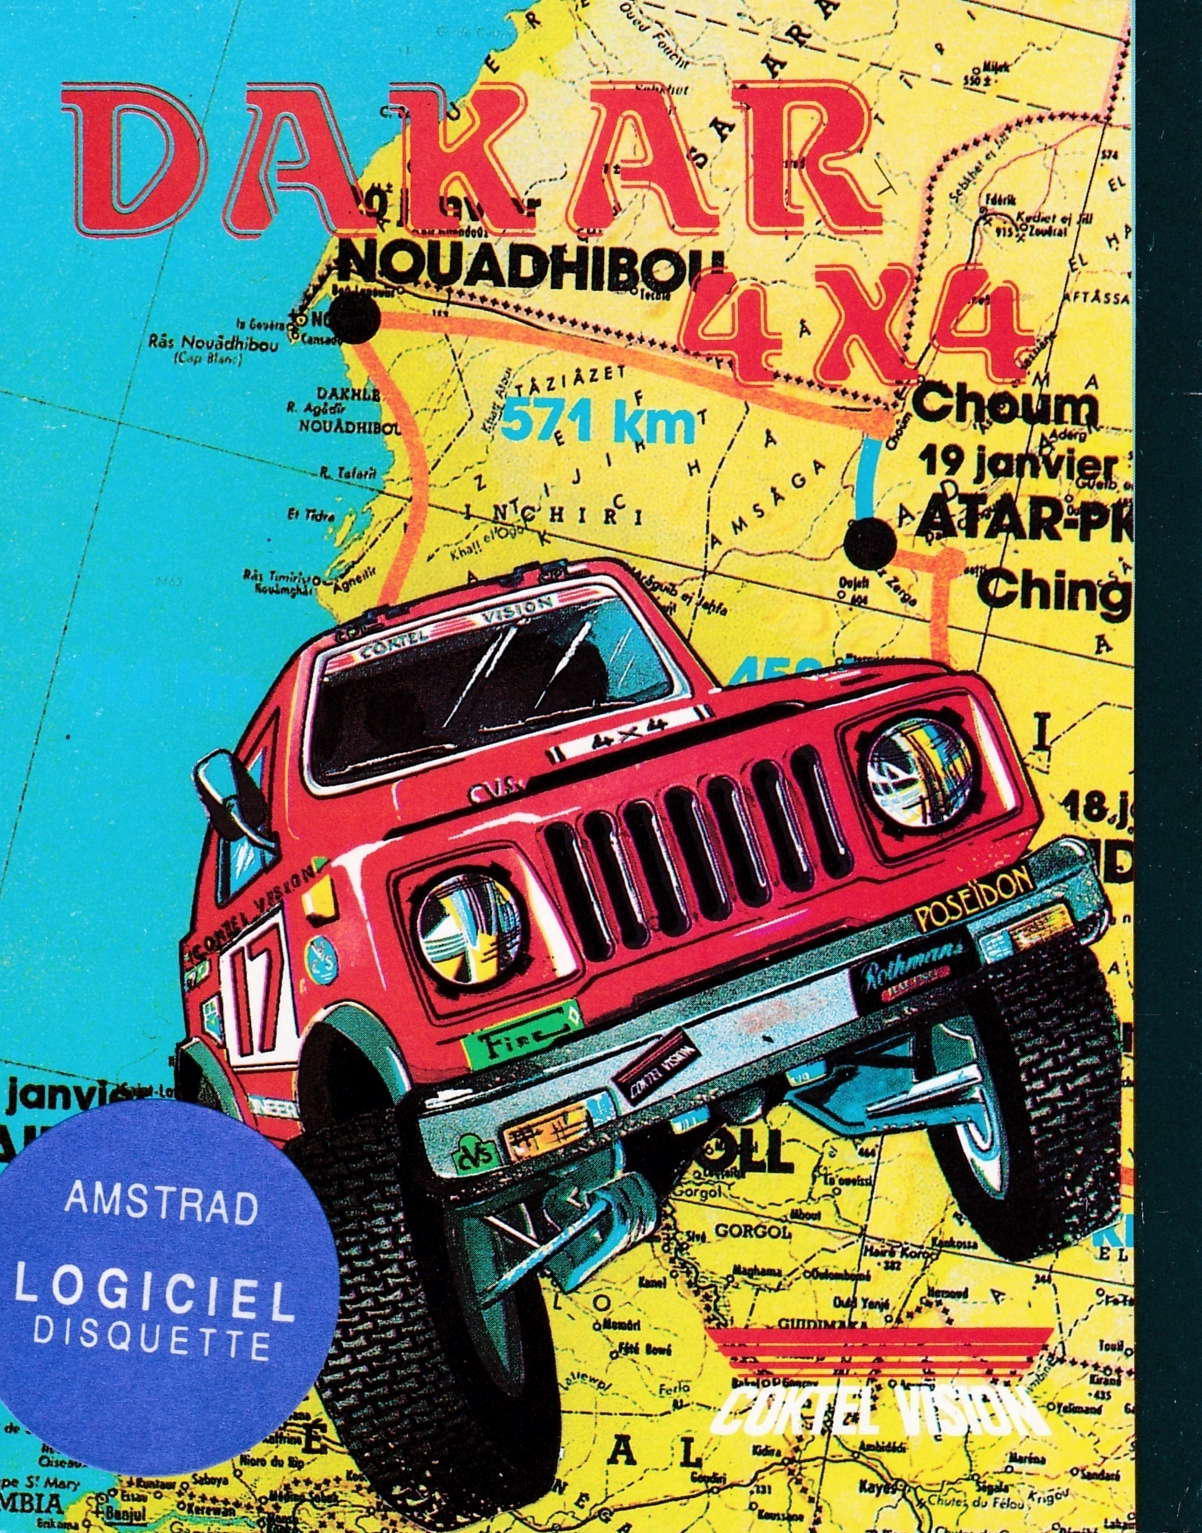 cover of the Amstrad CPC game Dakar 4x4  by GameBase CPC